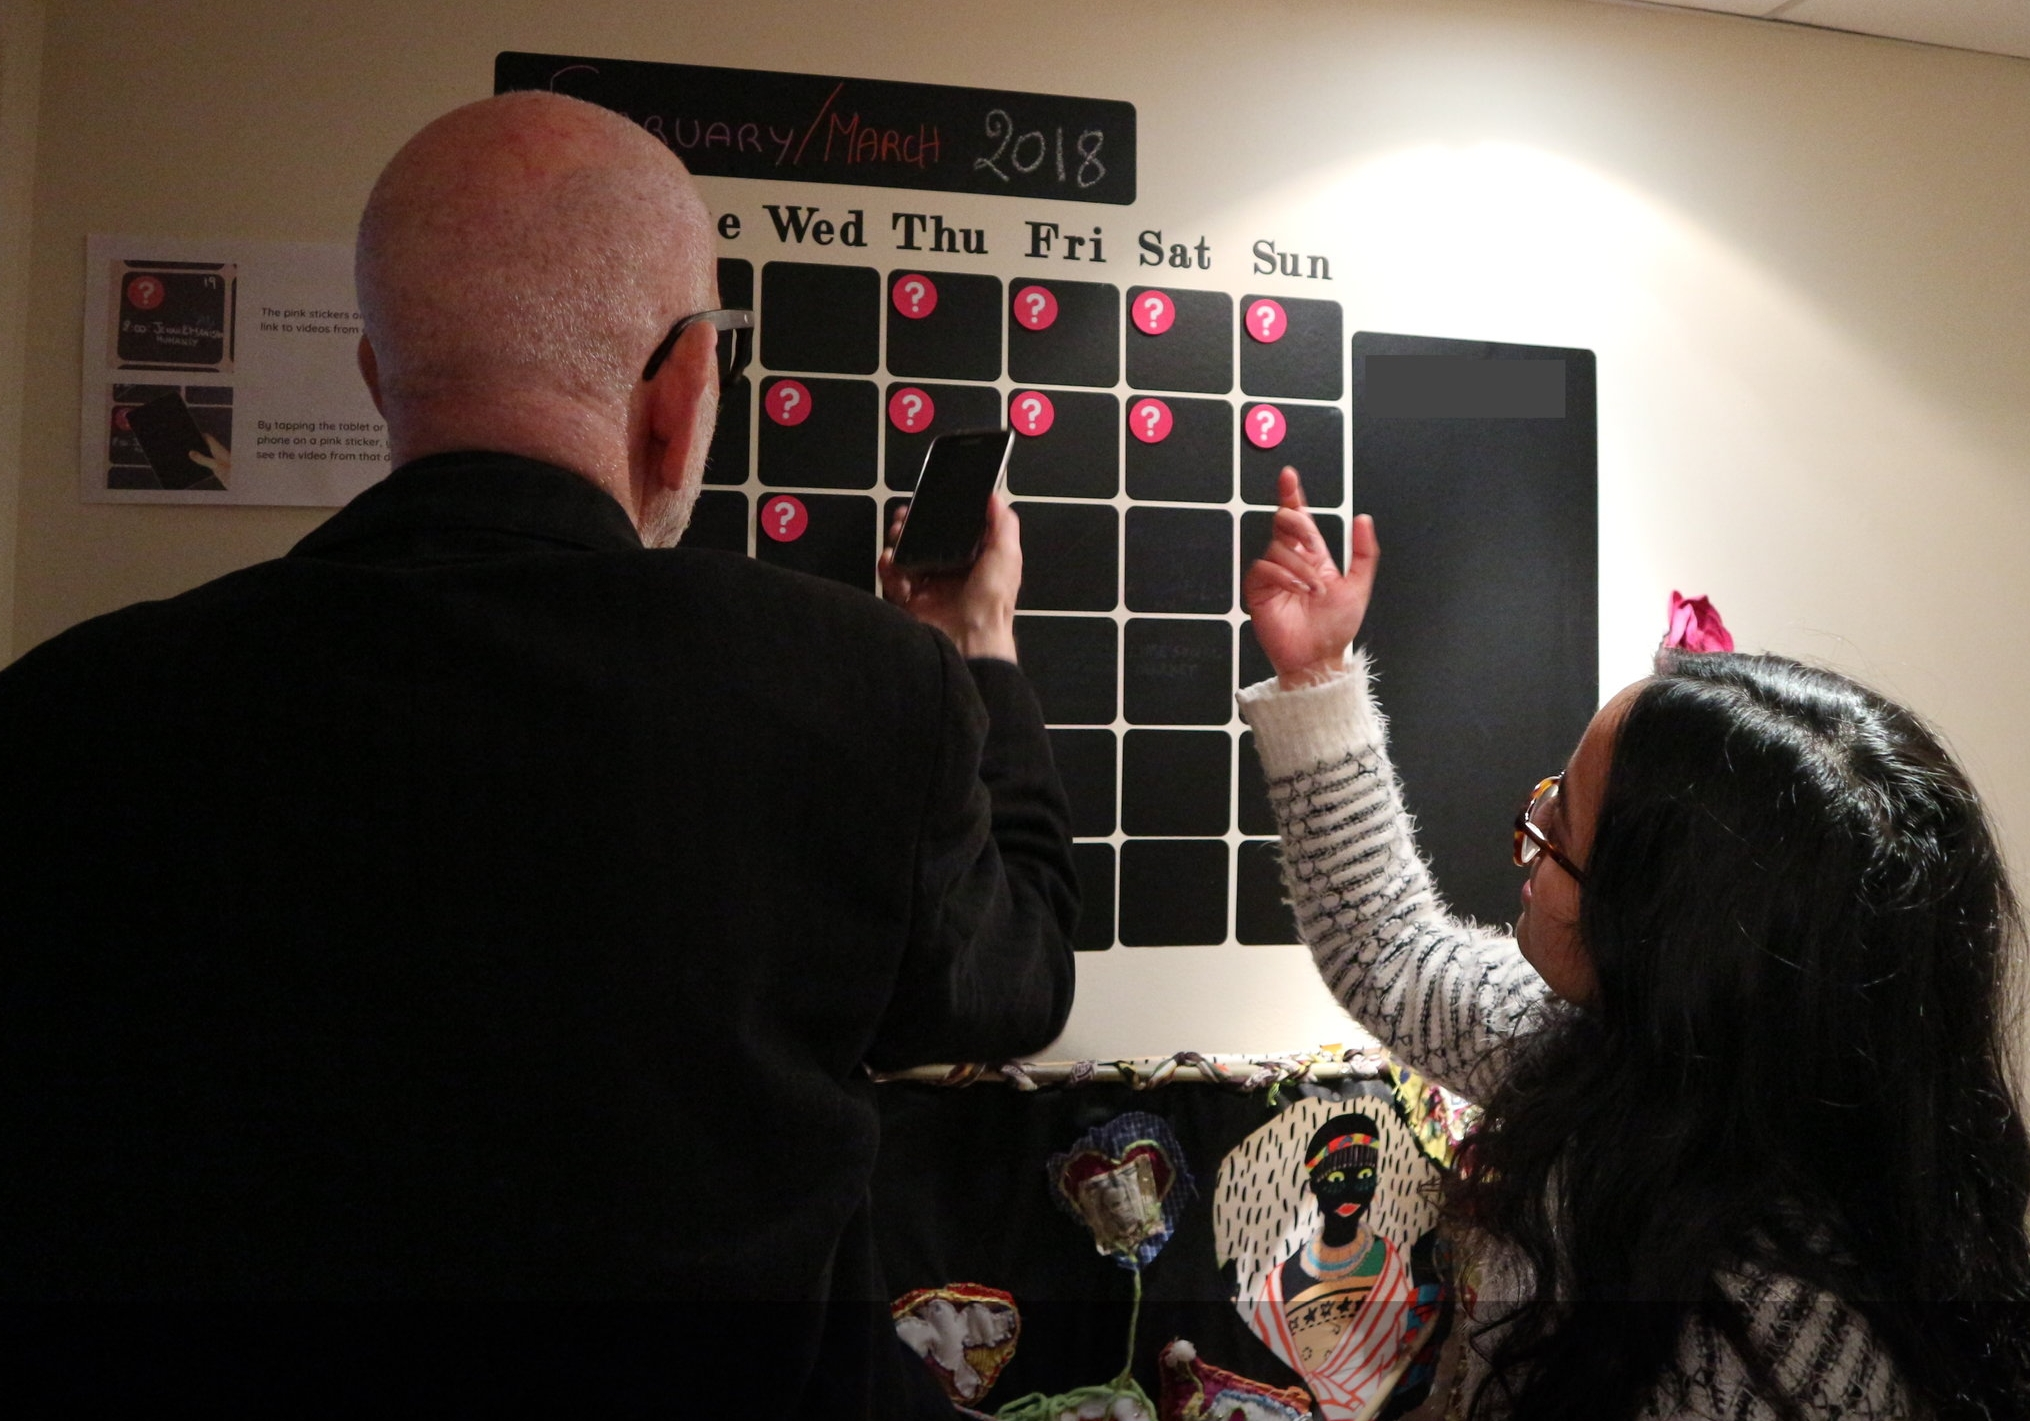 David and Manisha from Humanly exploring the calendar